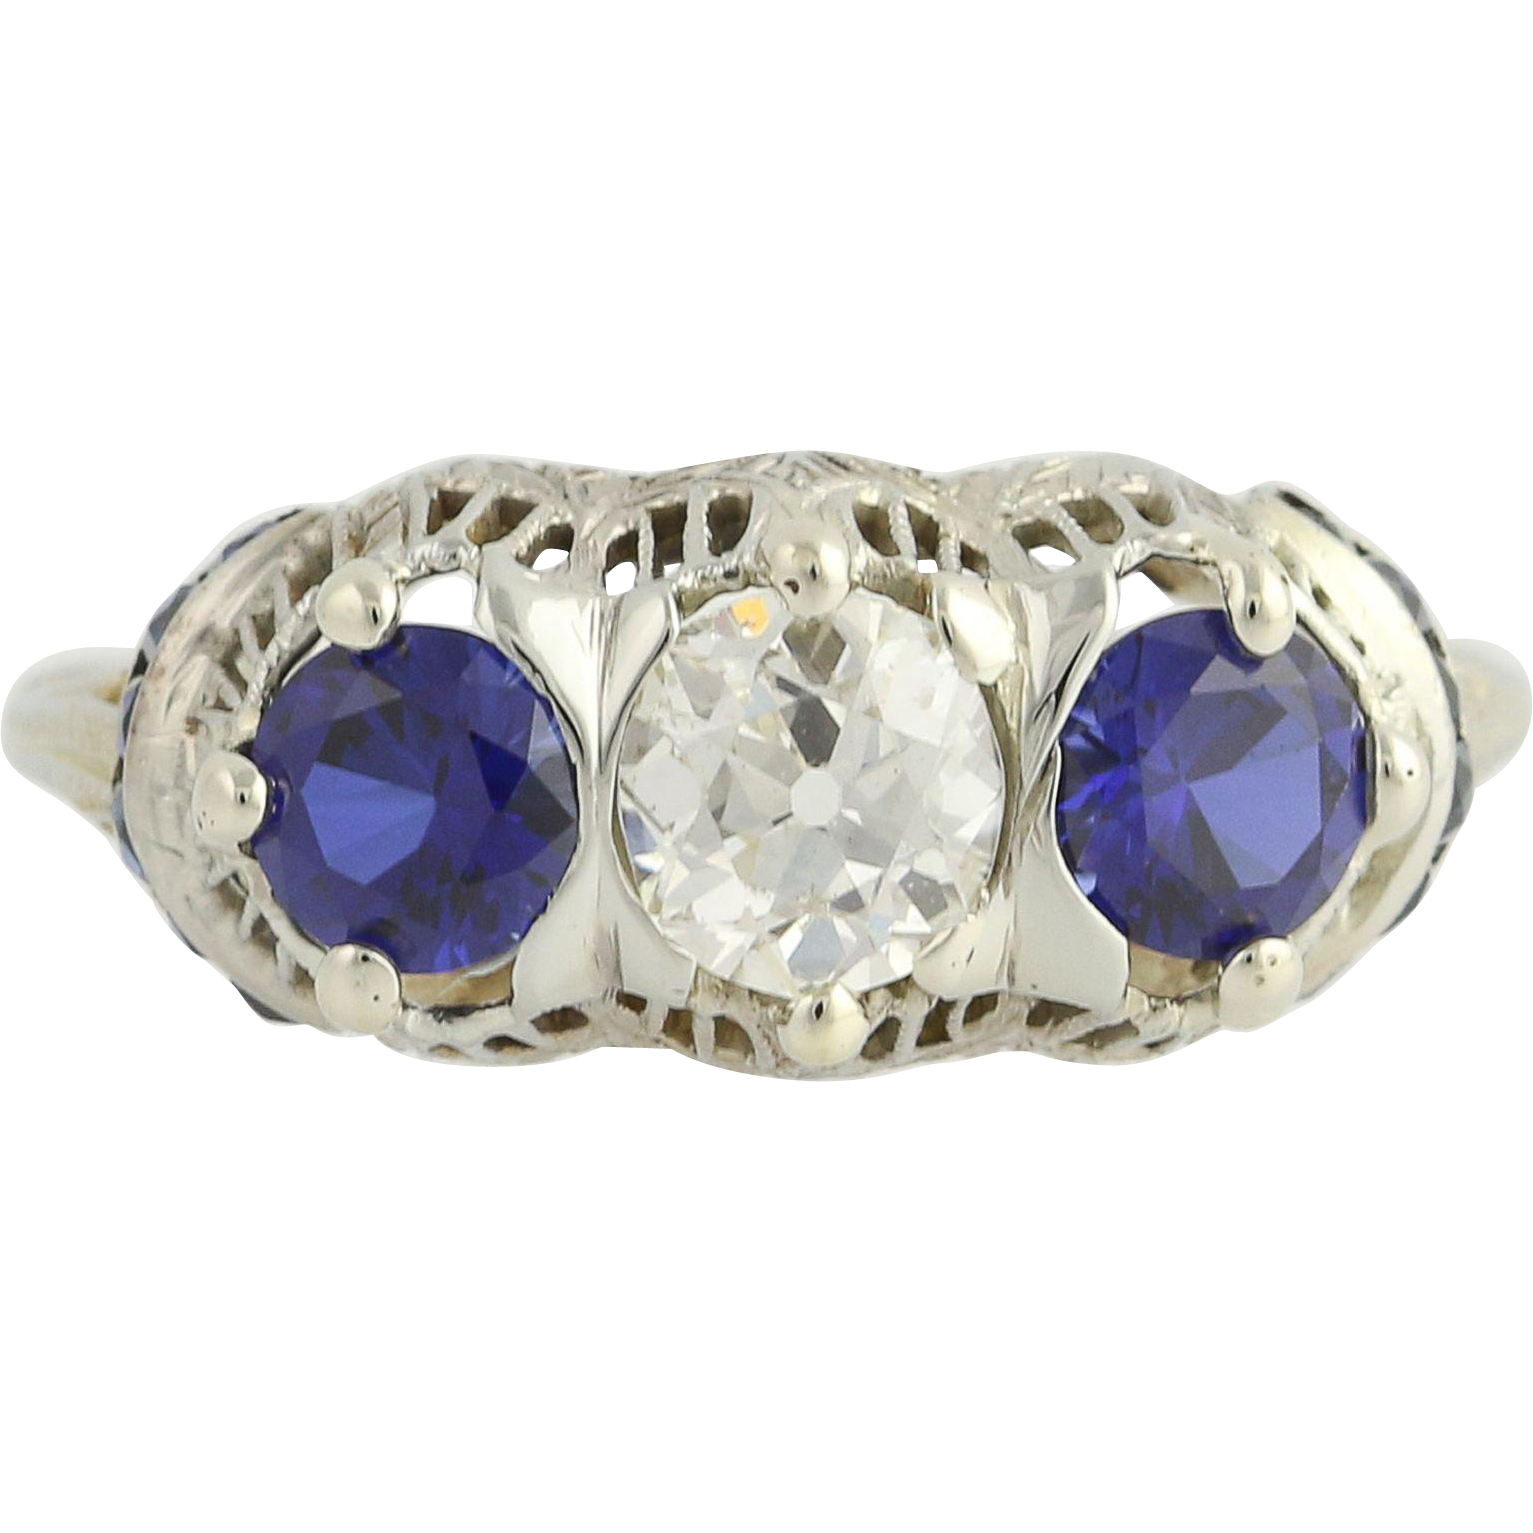 Art Deco Diamond & Synthetic Sapphire Ring - 18k White Gold Vintage 2.64ctw